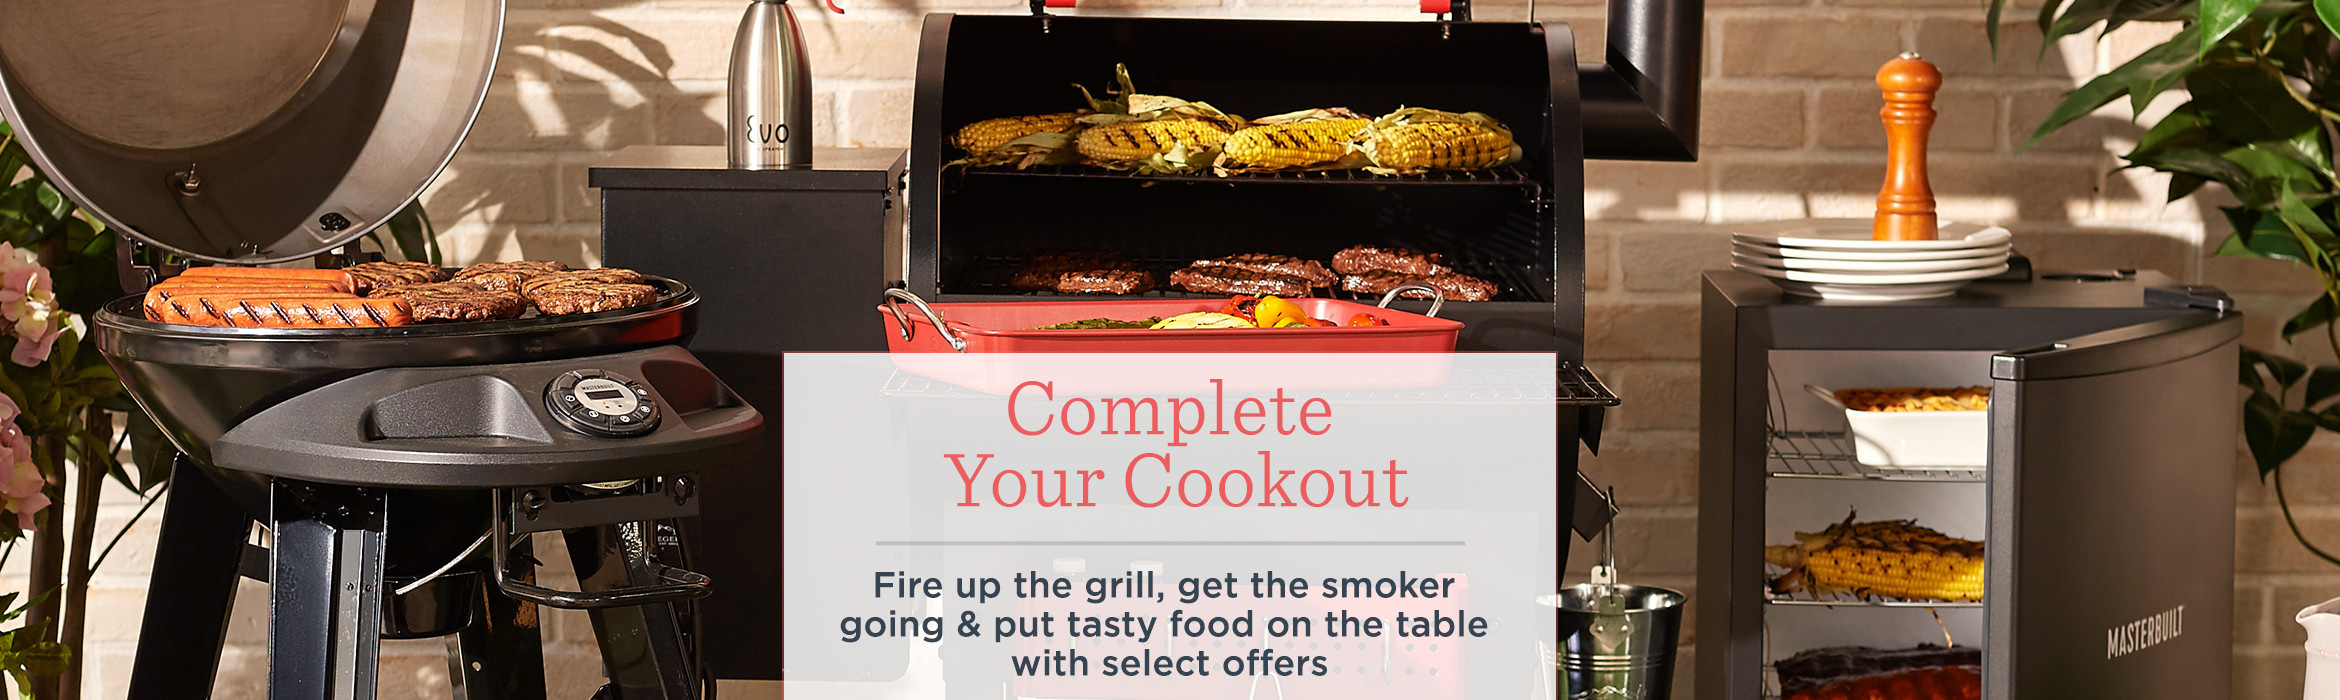 Complete Your Cookout. Fire up the grill, get the smoker going & put tasty food on the table with select offers